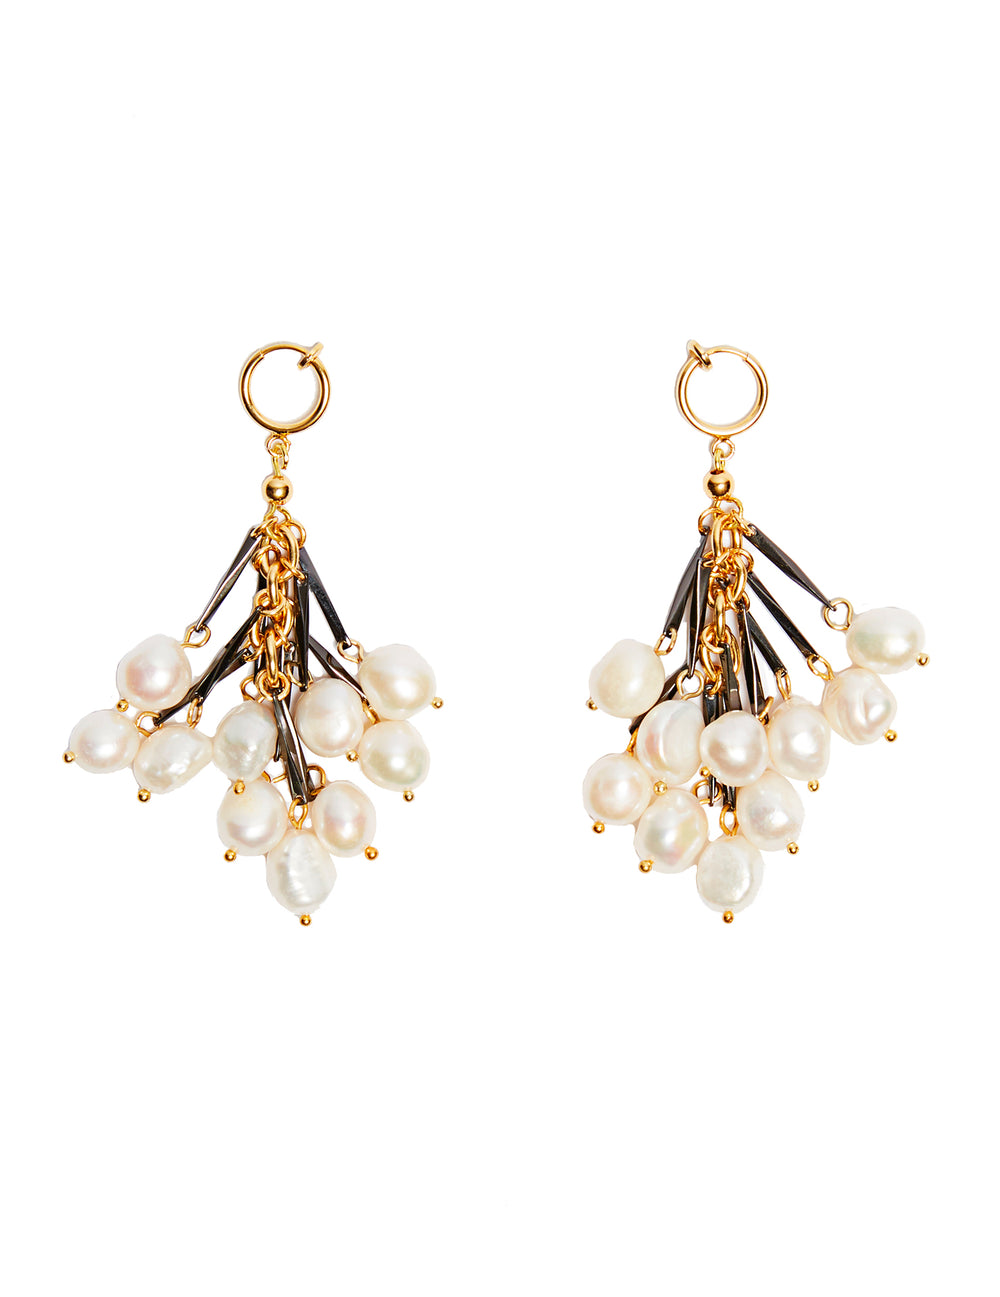 Crystal fringe earrings (stud)